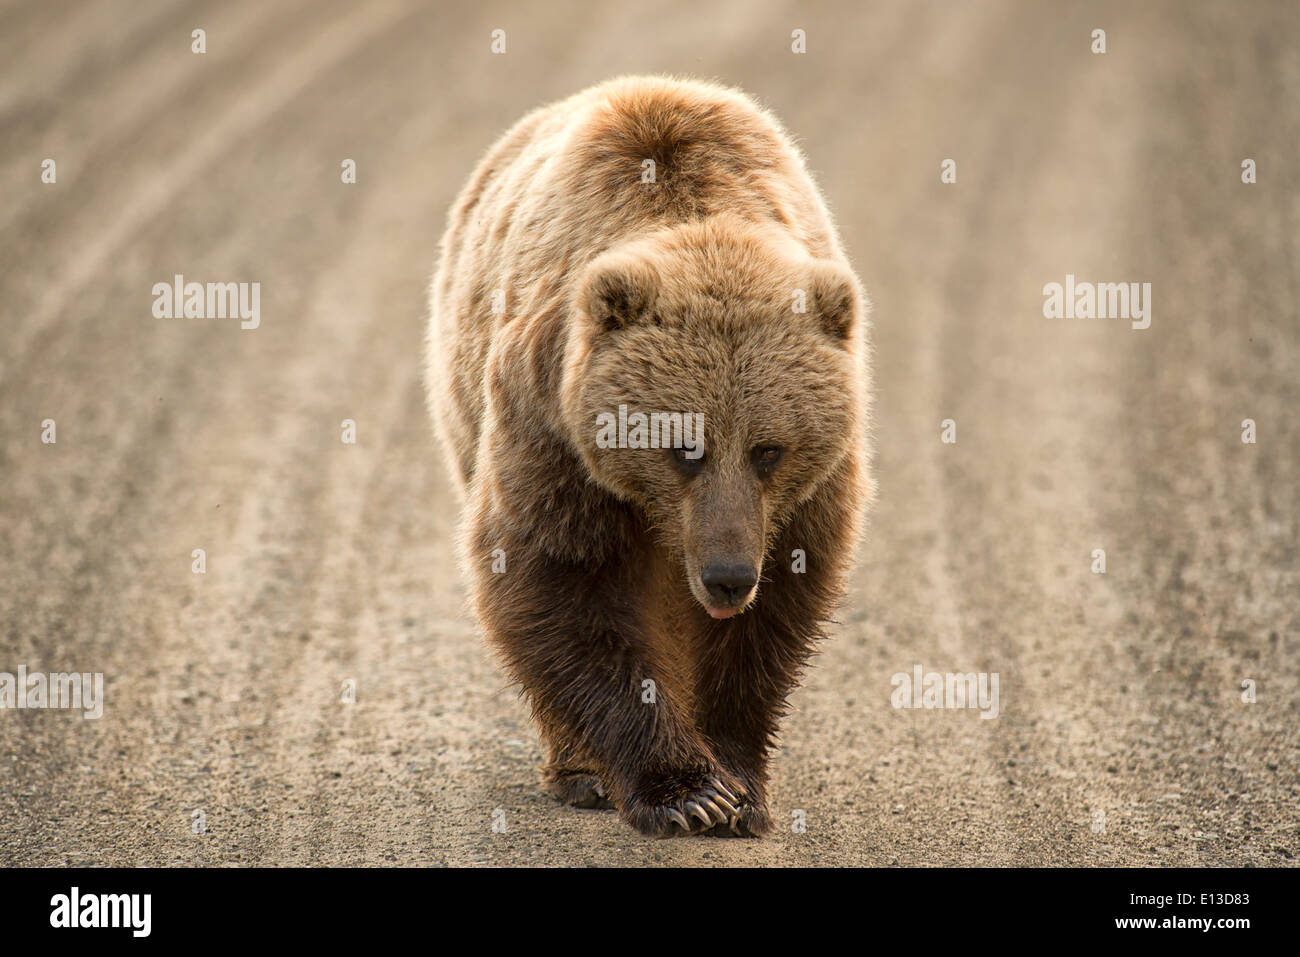 Grizzly bear walking - photo#48